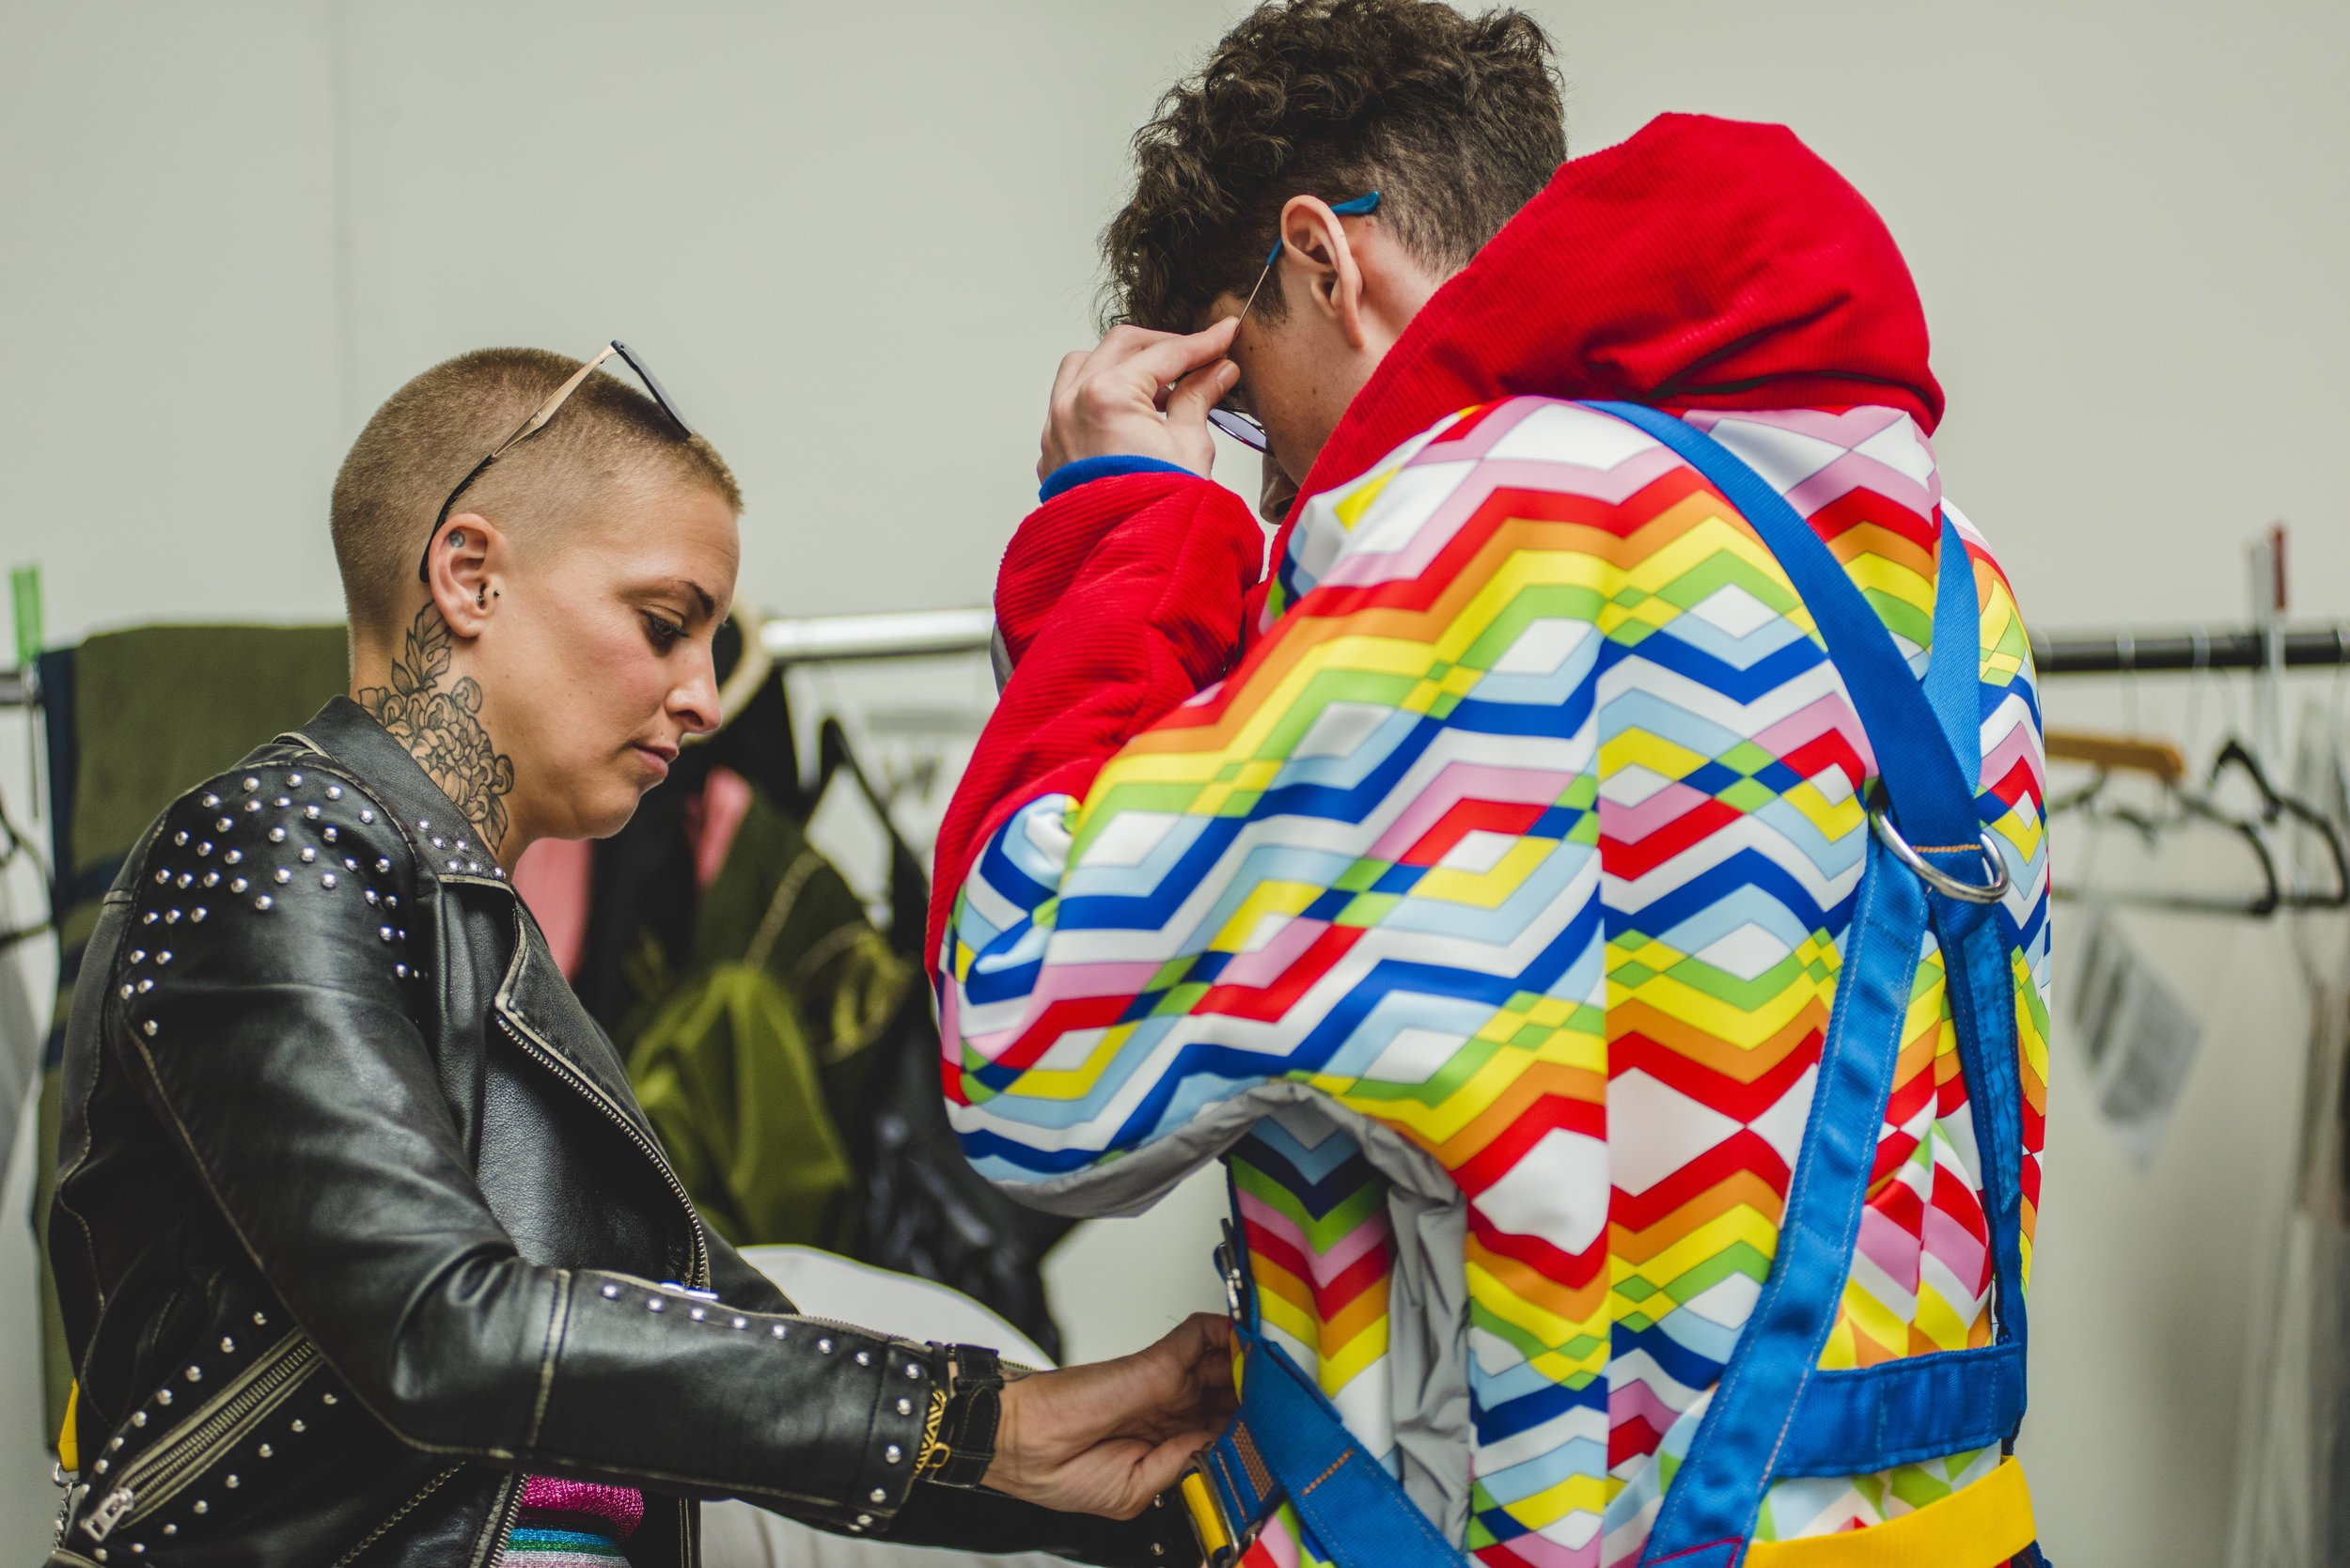 Amy Bray Backstage at GFW18